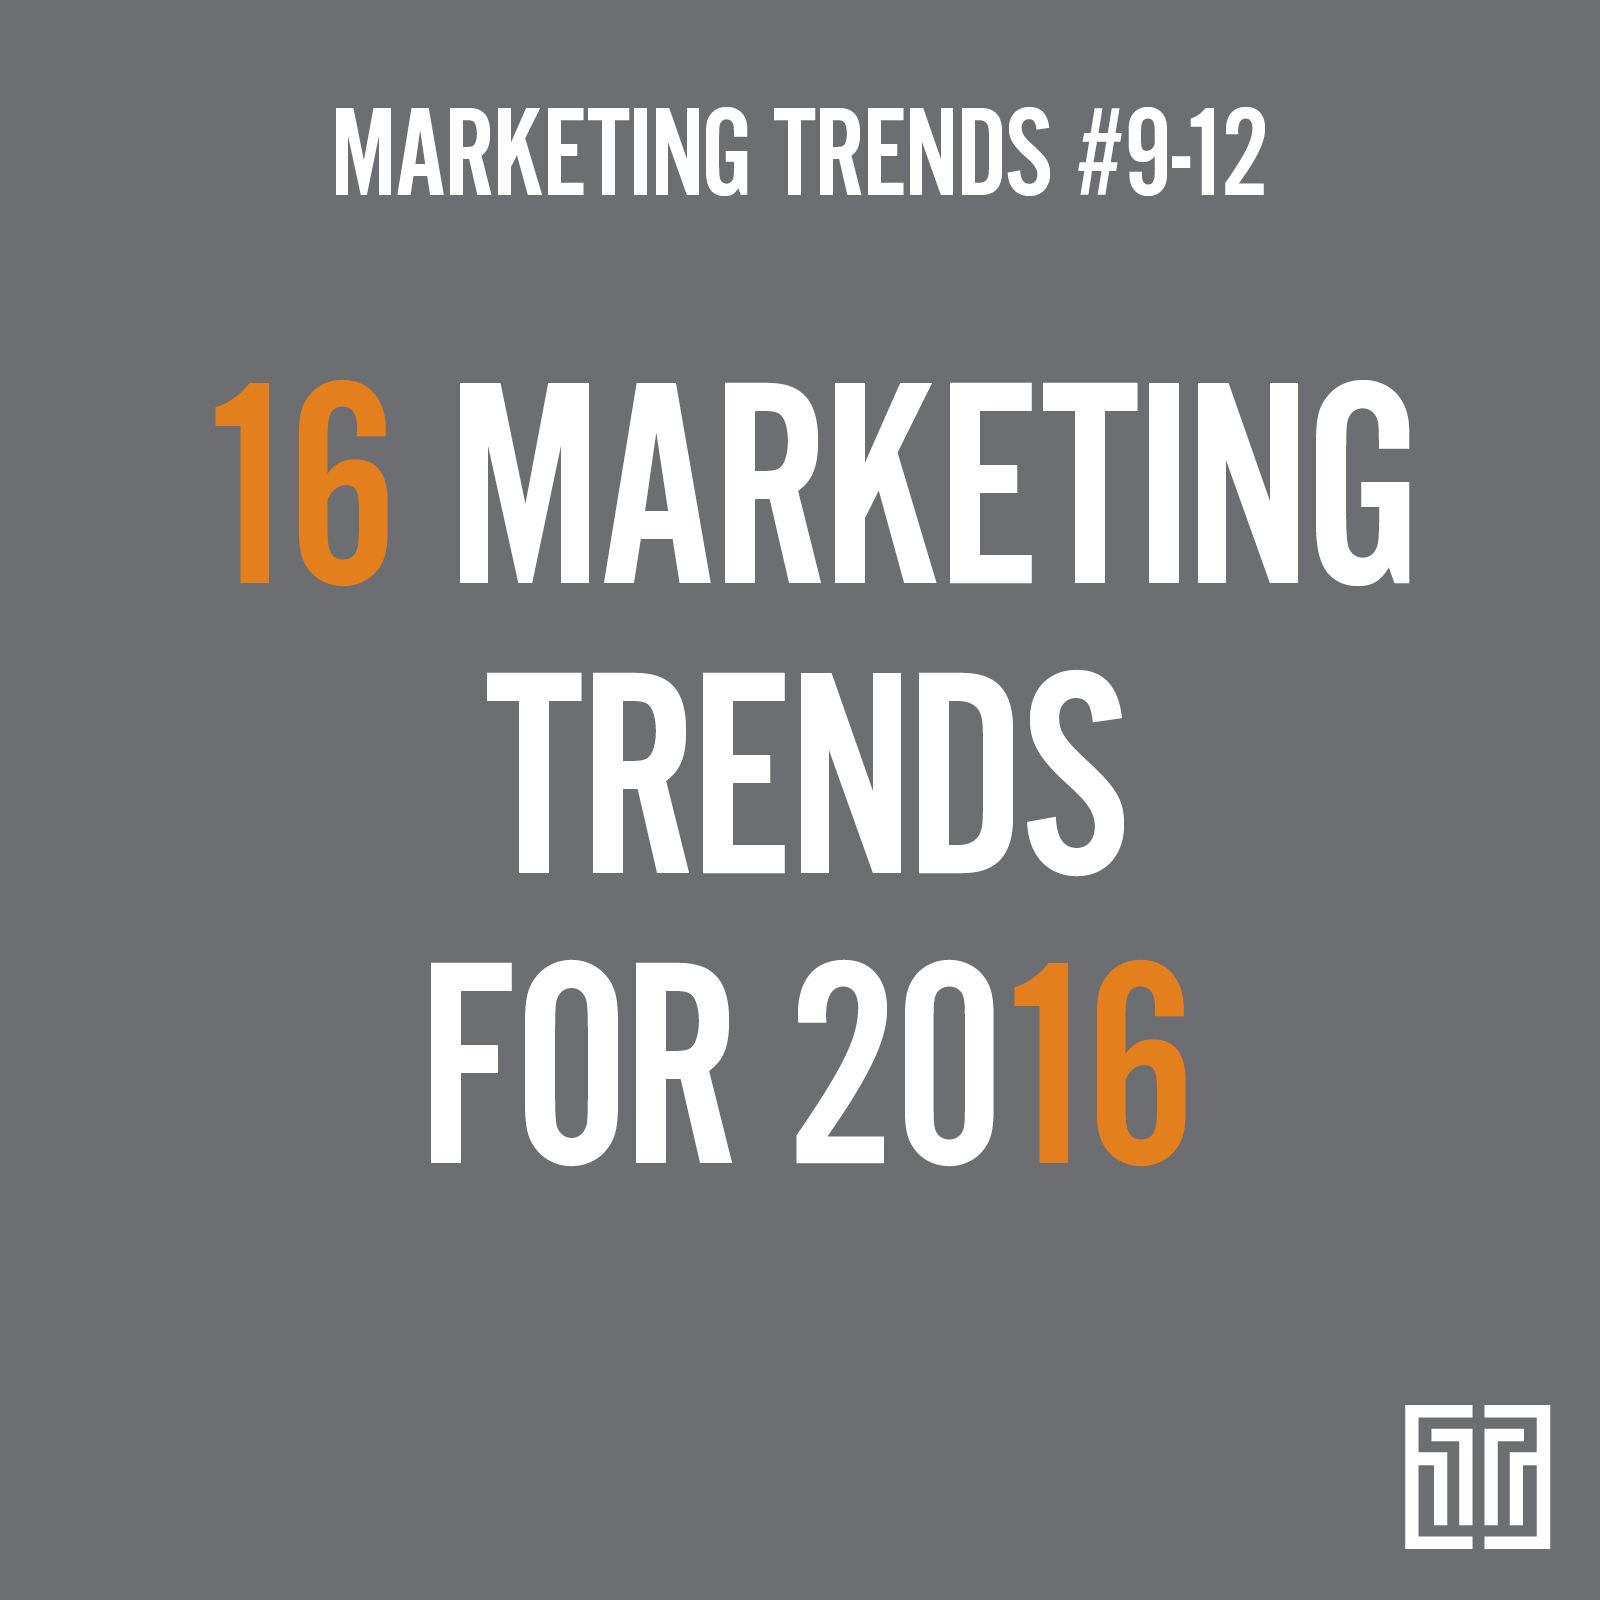 16 Marketing Trends for 2016: Trends 9-12